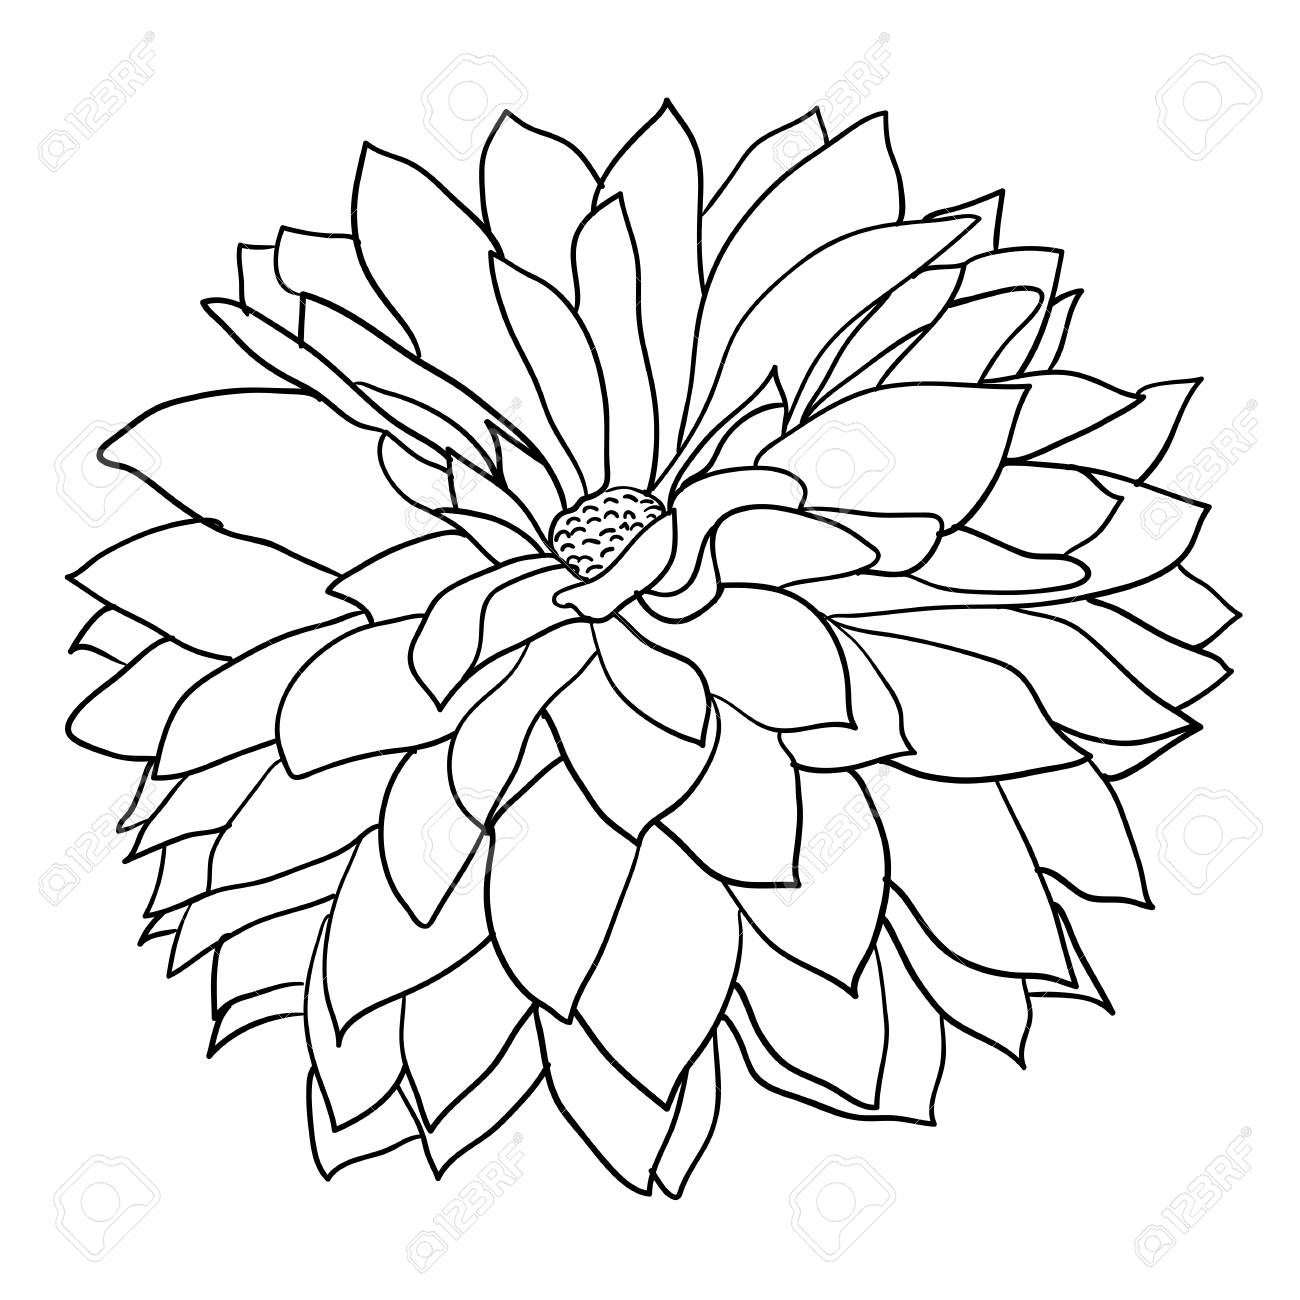 Beautiful monochrome sketch, black and white dahlia flower isolated..